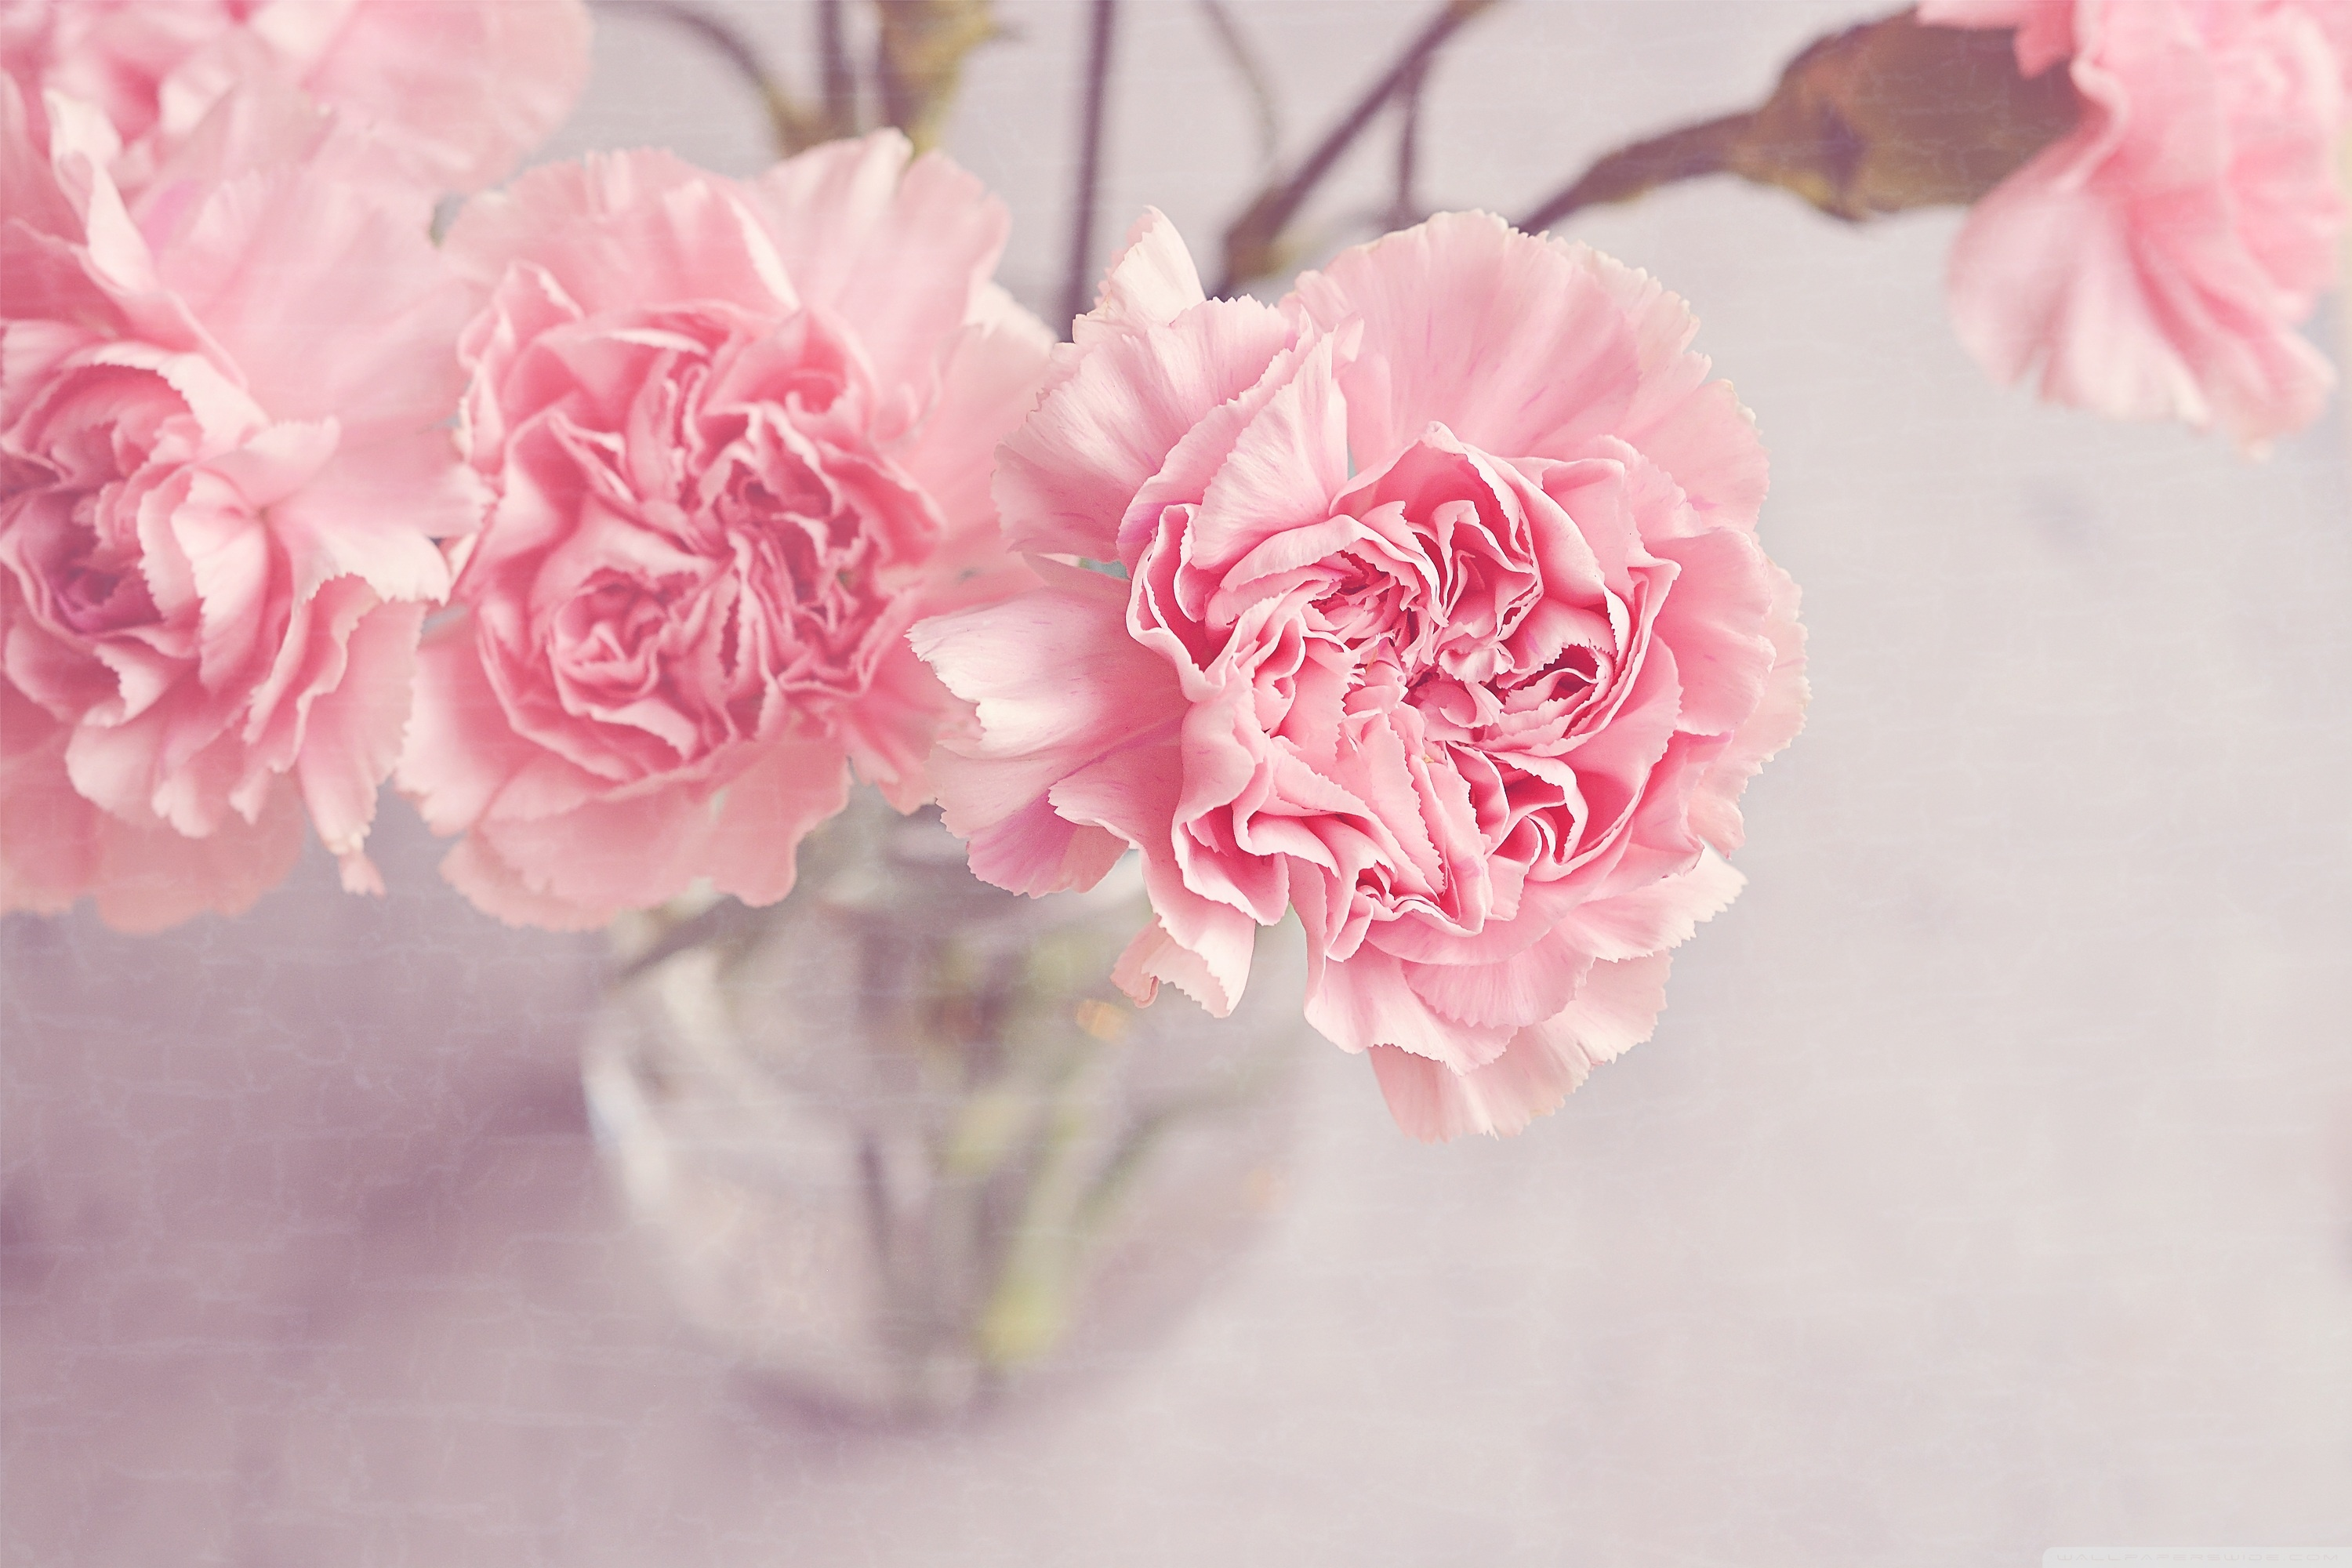 Hd wallpaper cute - Light_pink_carnations_flowers_in_a_vase Wallpaper Light_pink_carnations_flowers_in_a_vase Wallpaper